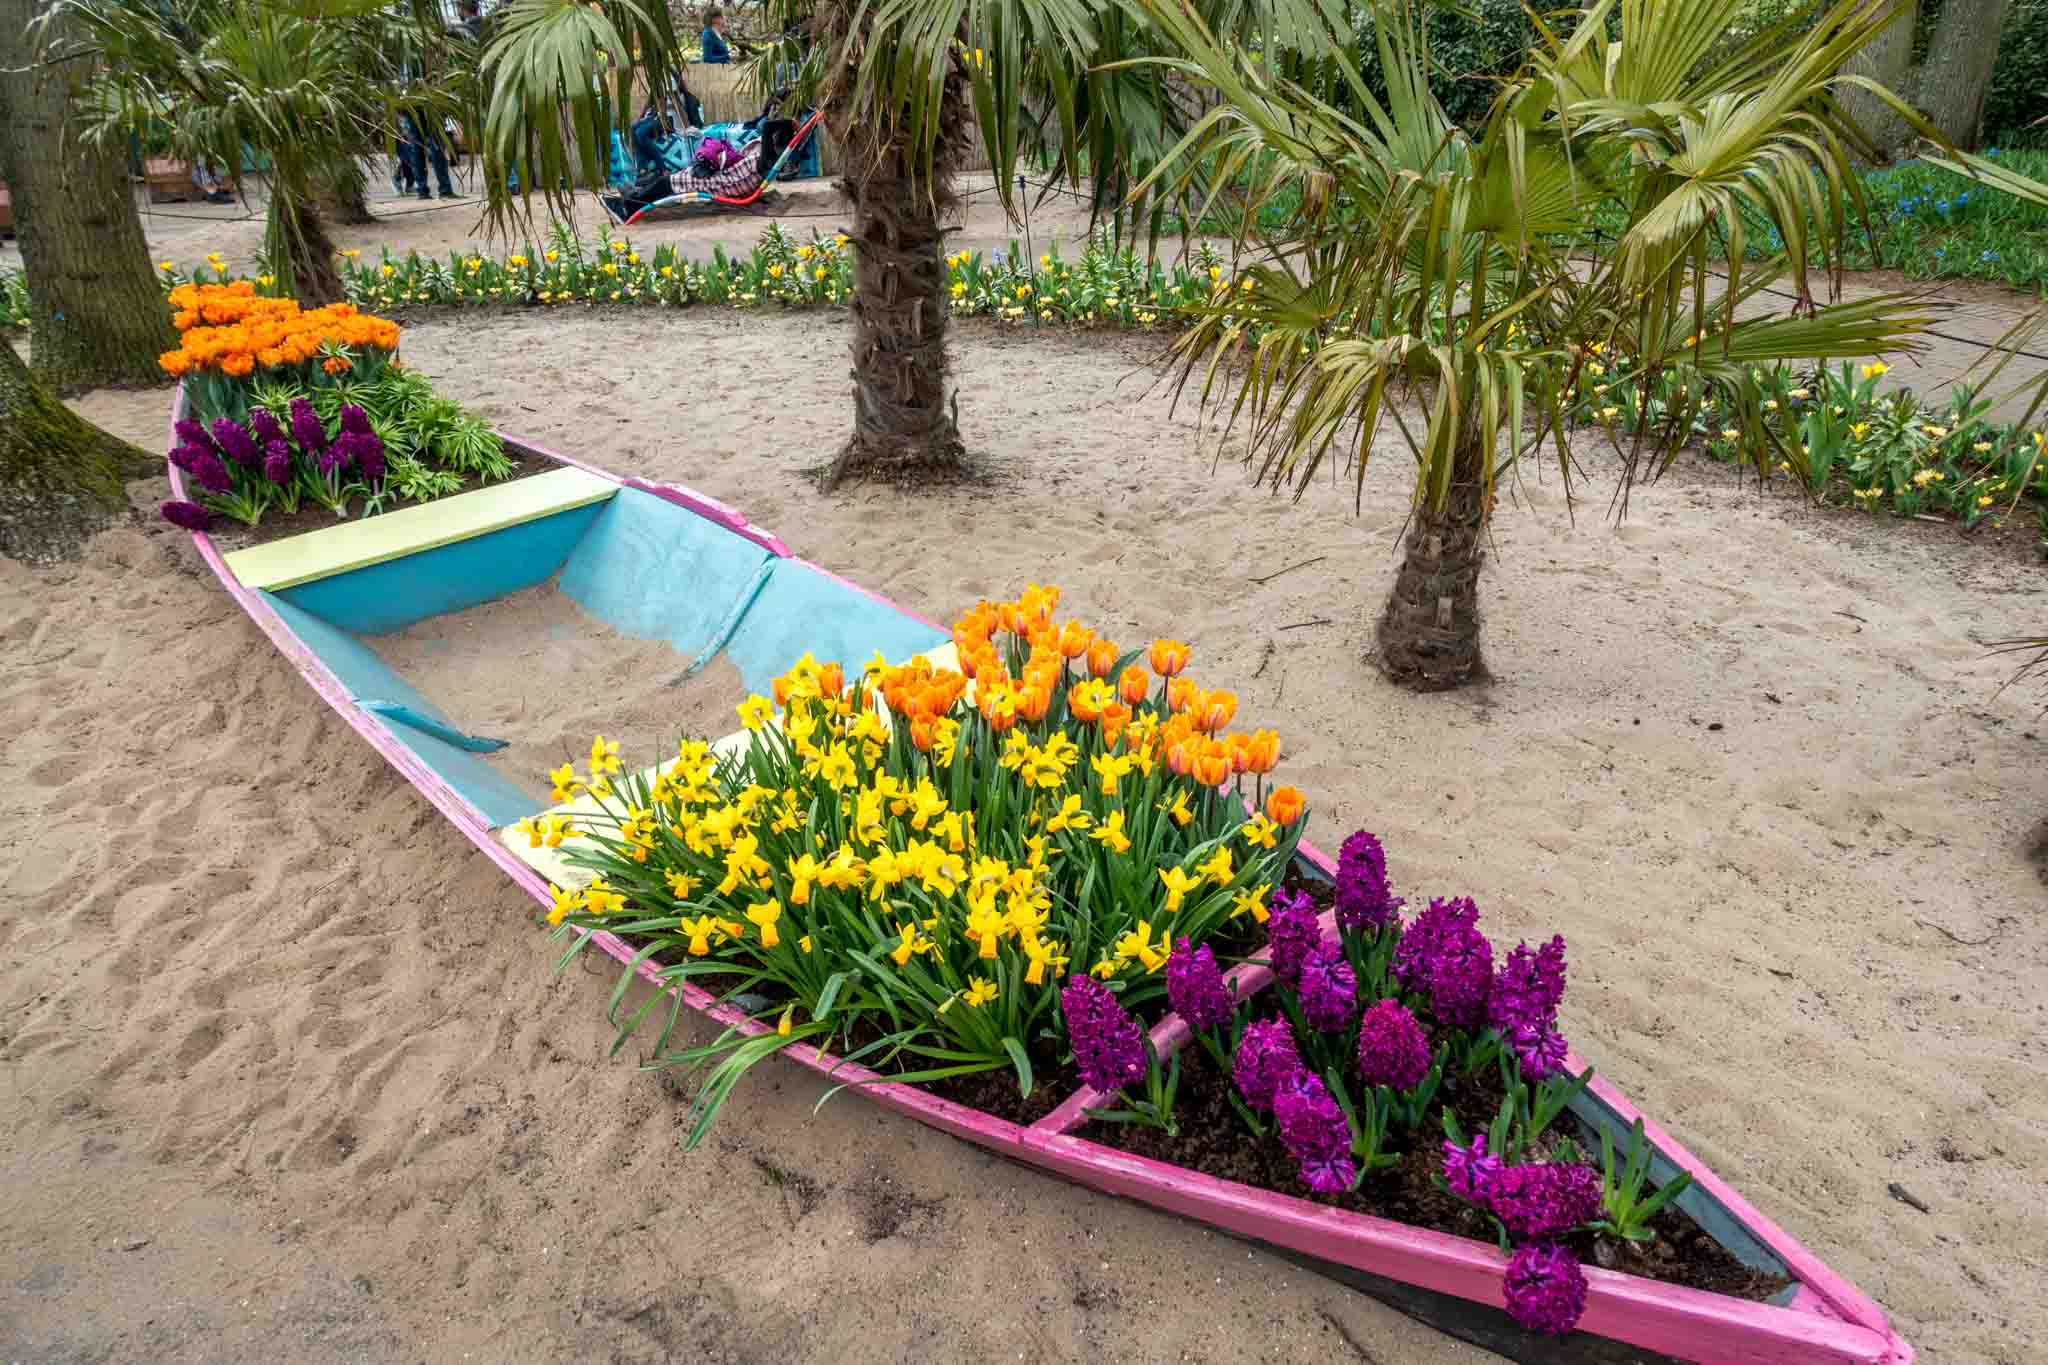 Canoe filled with flowers